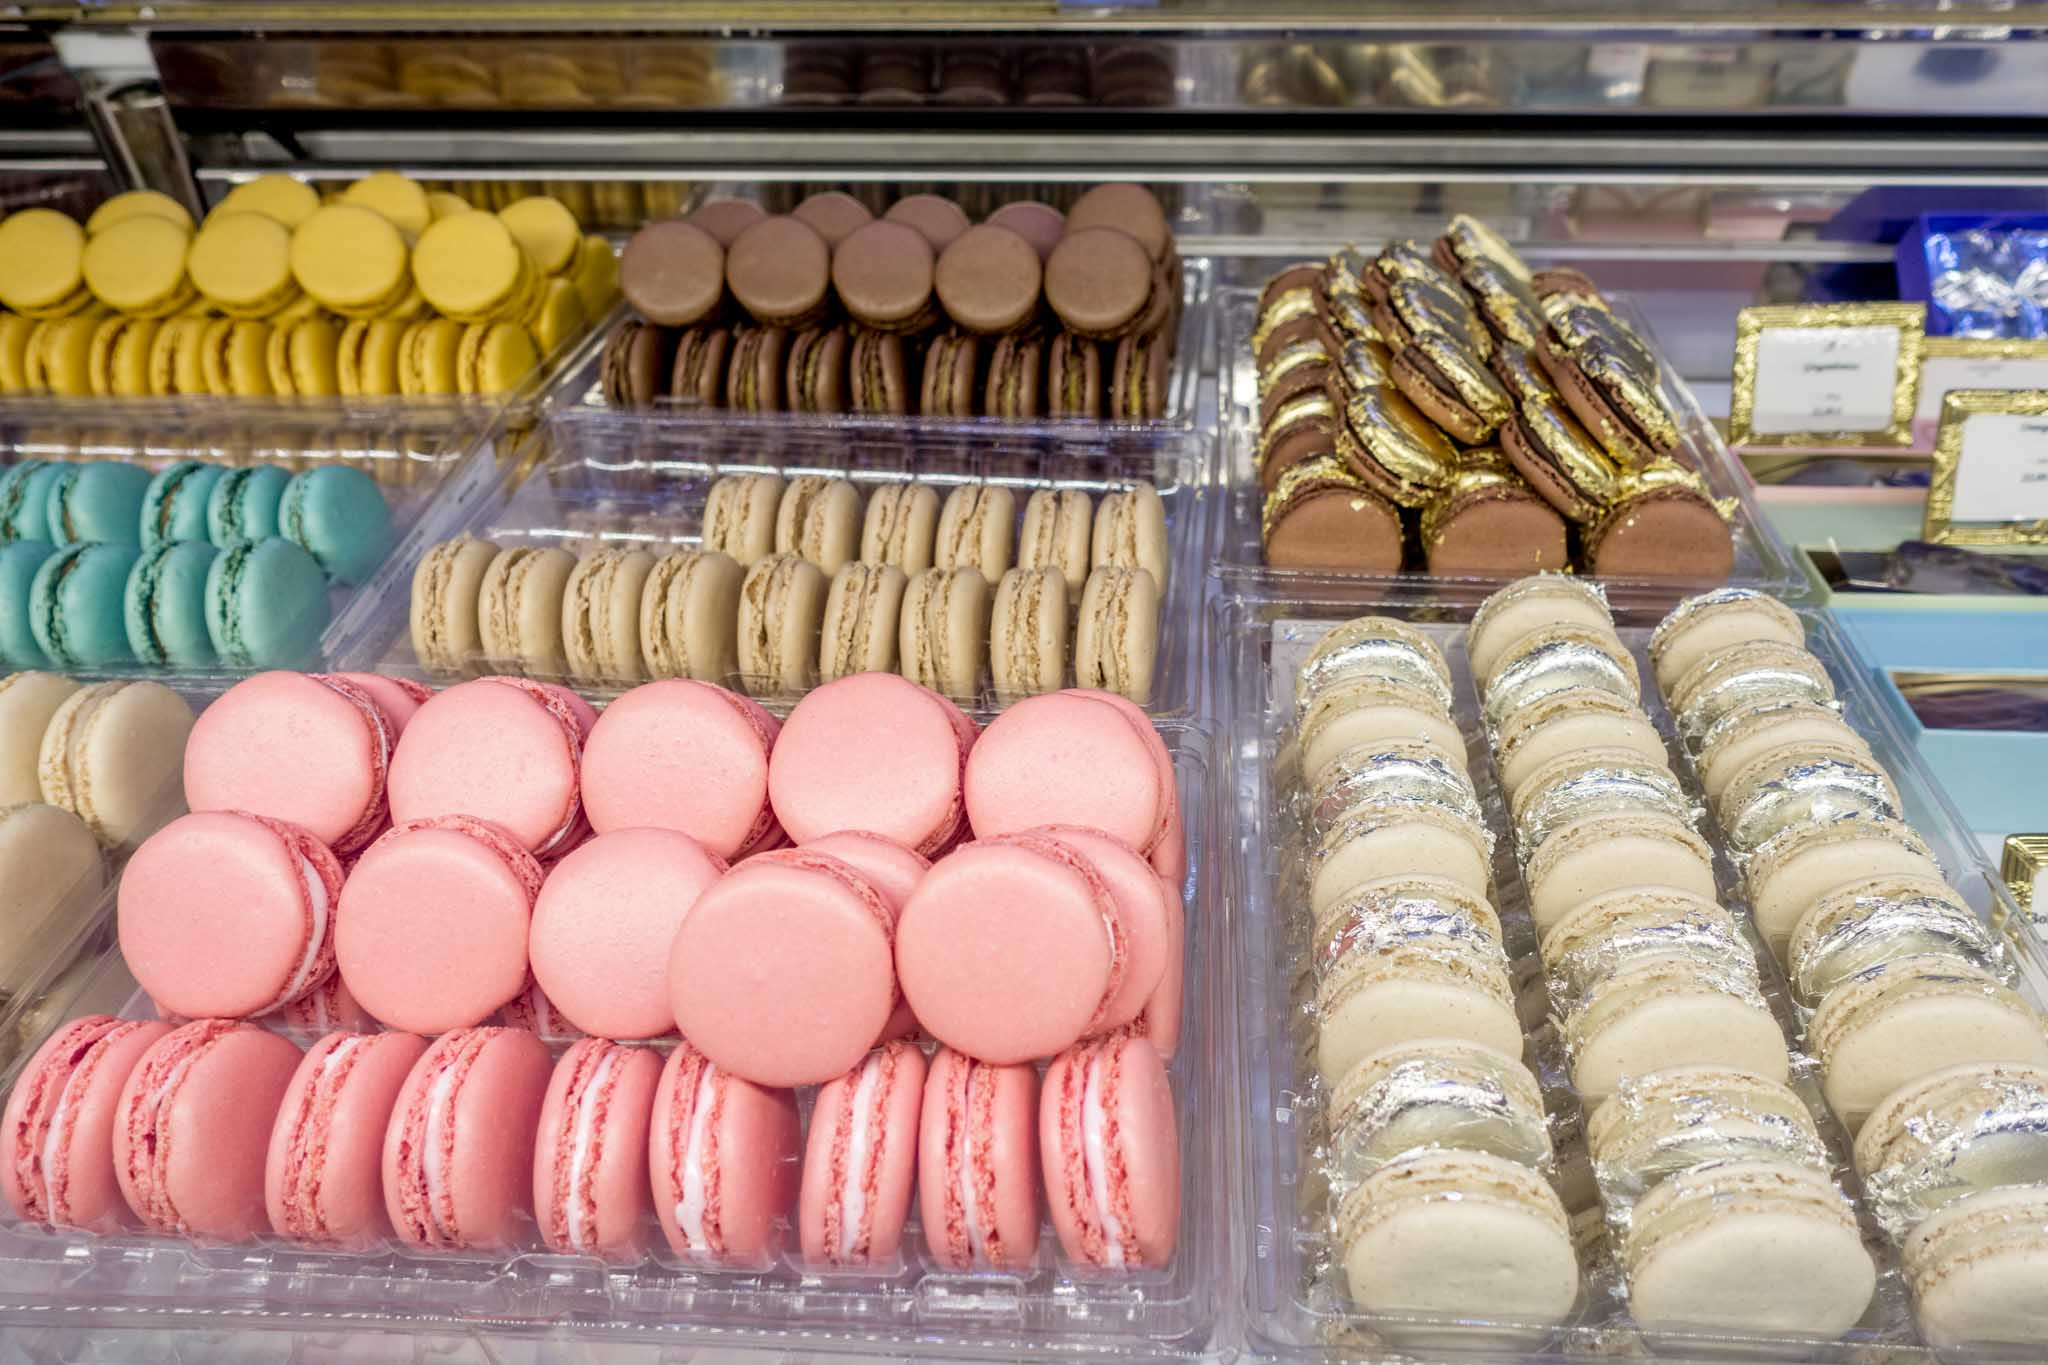 Try a macaron at Laduree -- it's one of the fun Luxembourg things to do